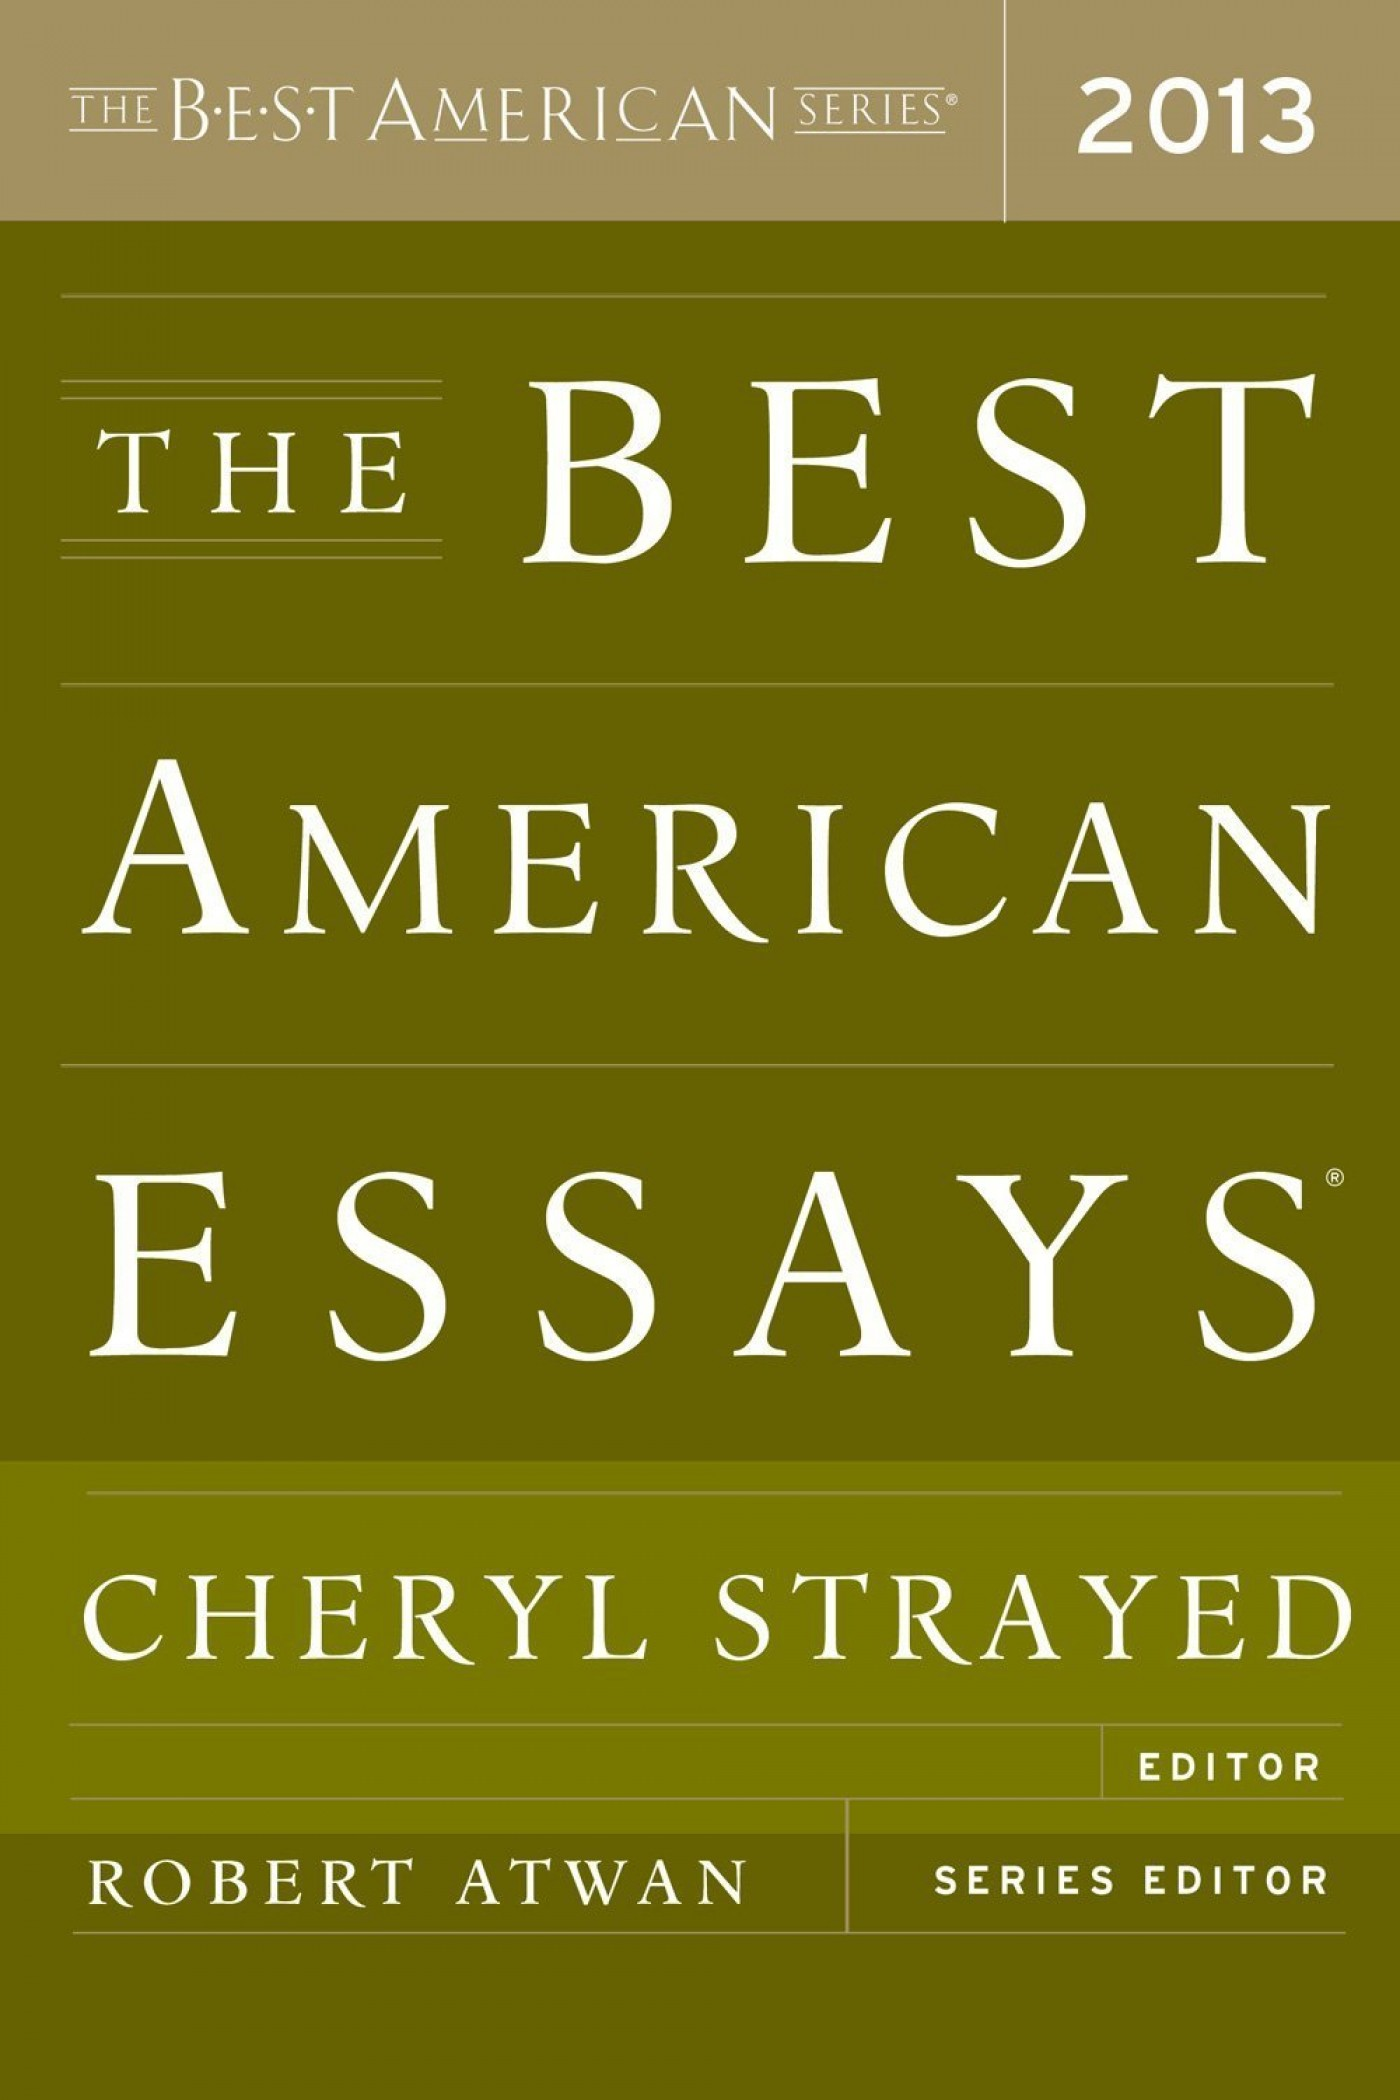 004 The Best American Essays Essay Wonderful 2013 Pdf Download Of Century Sparknotes 2017 1400